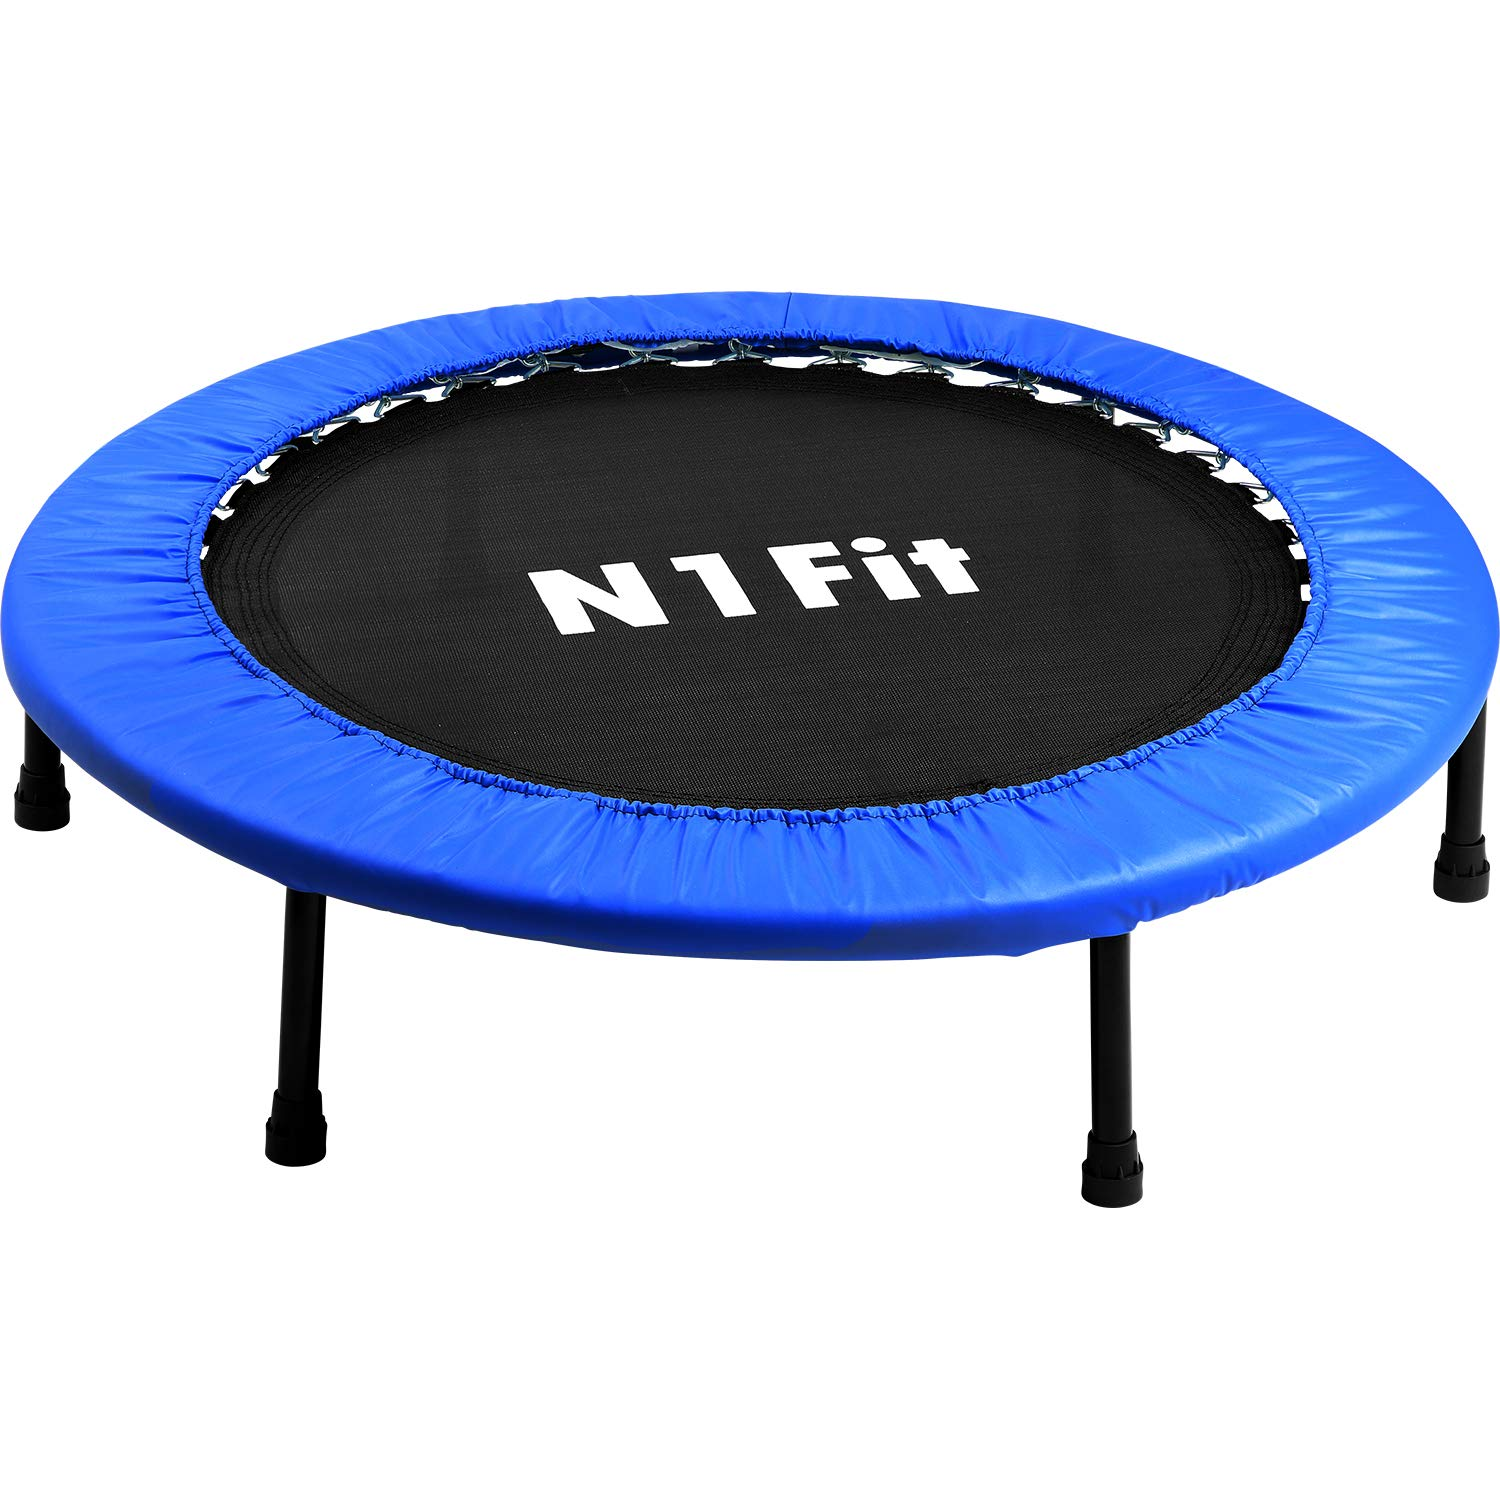 N1Fit Mini Trampoline for Adults - Exercise Trampoline, Mini Trampolines, Personal Trampoline, Trampoline Small Indoor, Rebounding Tiny Trampoline with Springs System for Home Cardio Workouts 40'' by N1Fit (Image #4)